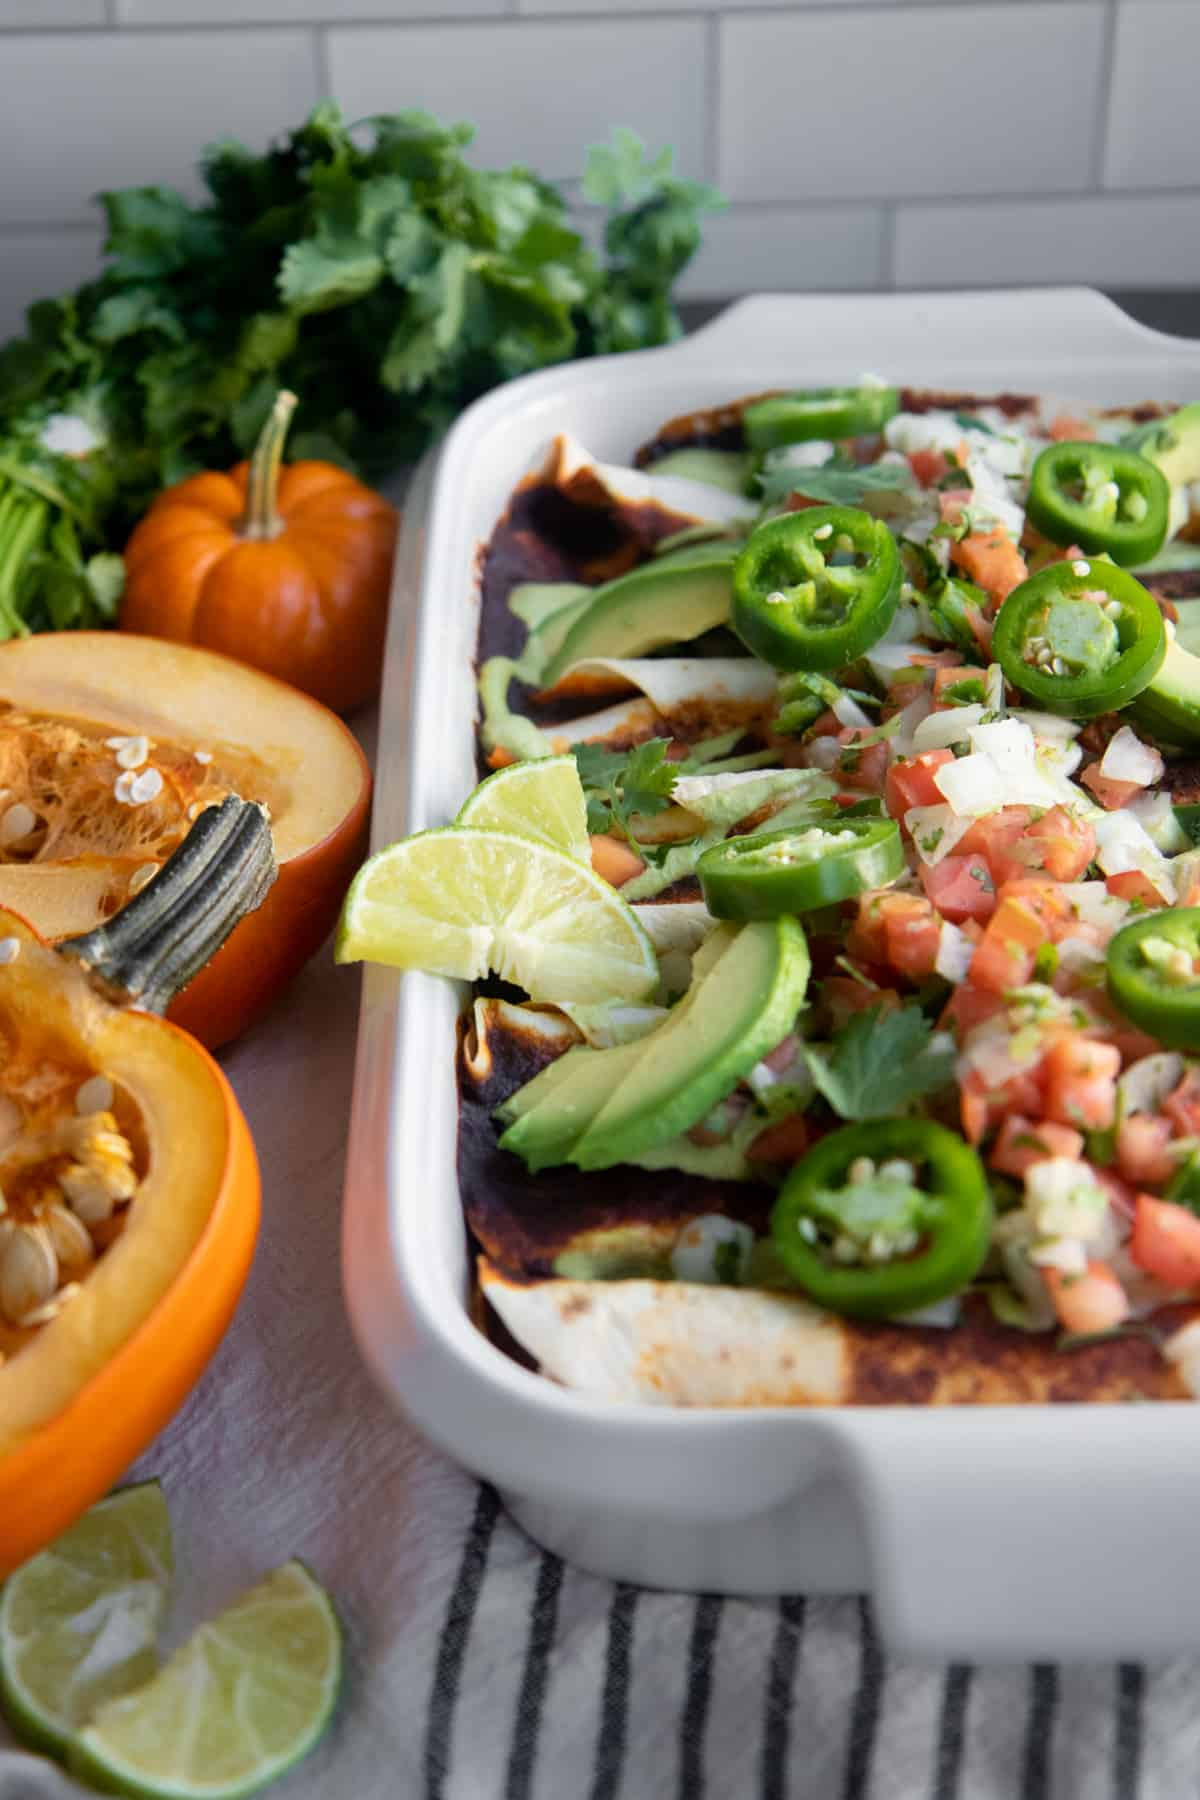 Pan of baked enchiladas next to a halved pumpkin.